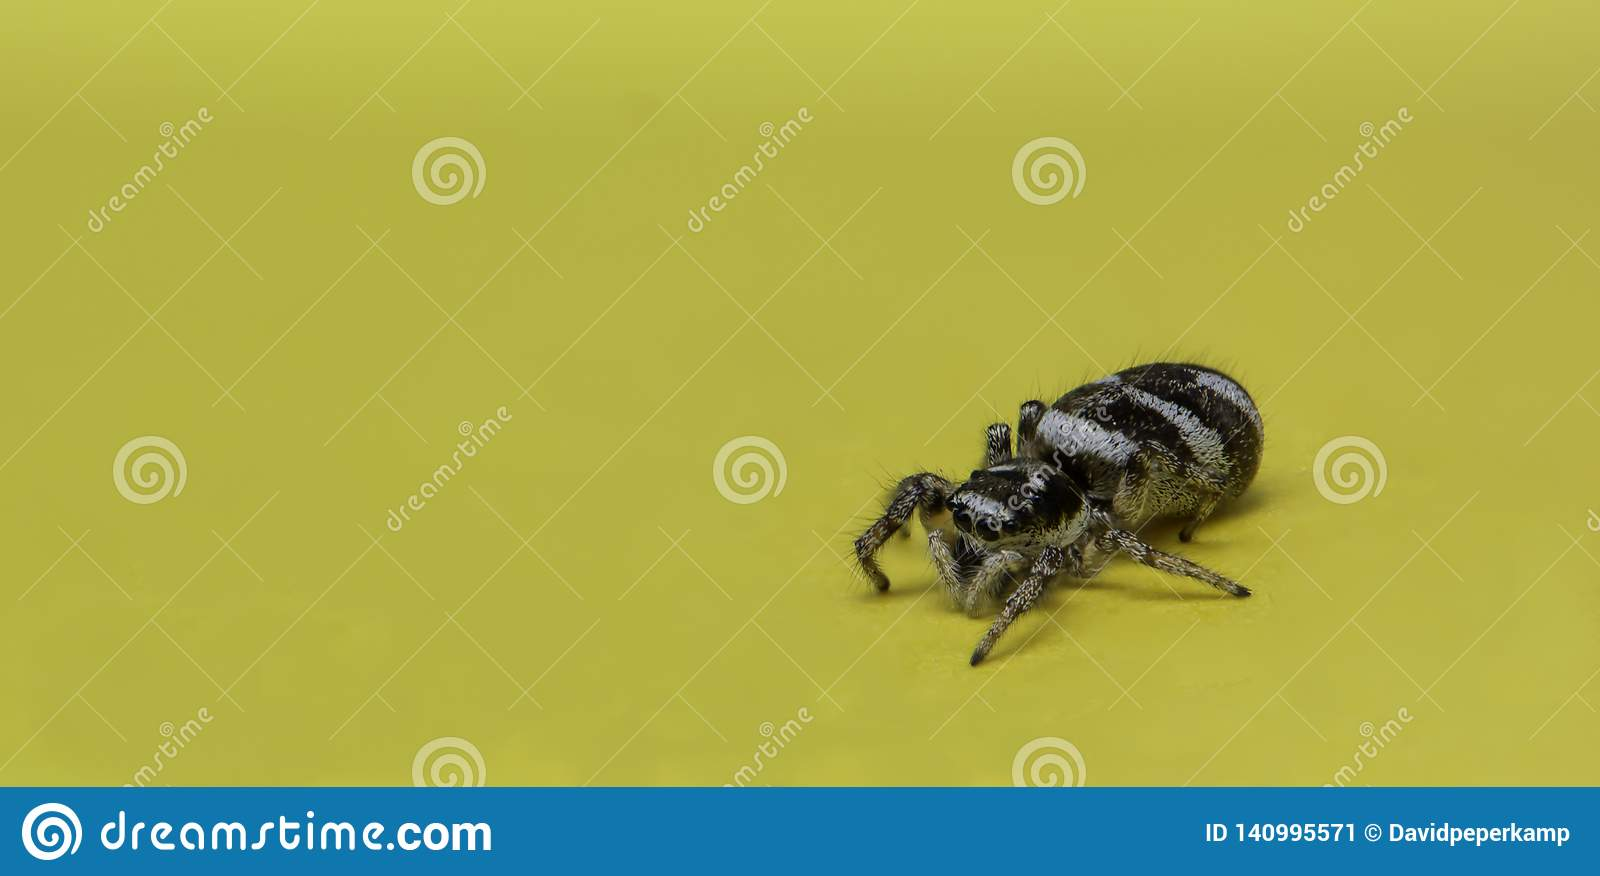 Jumping Spider on a yellow memo note, Macro photo, Salticidae